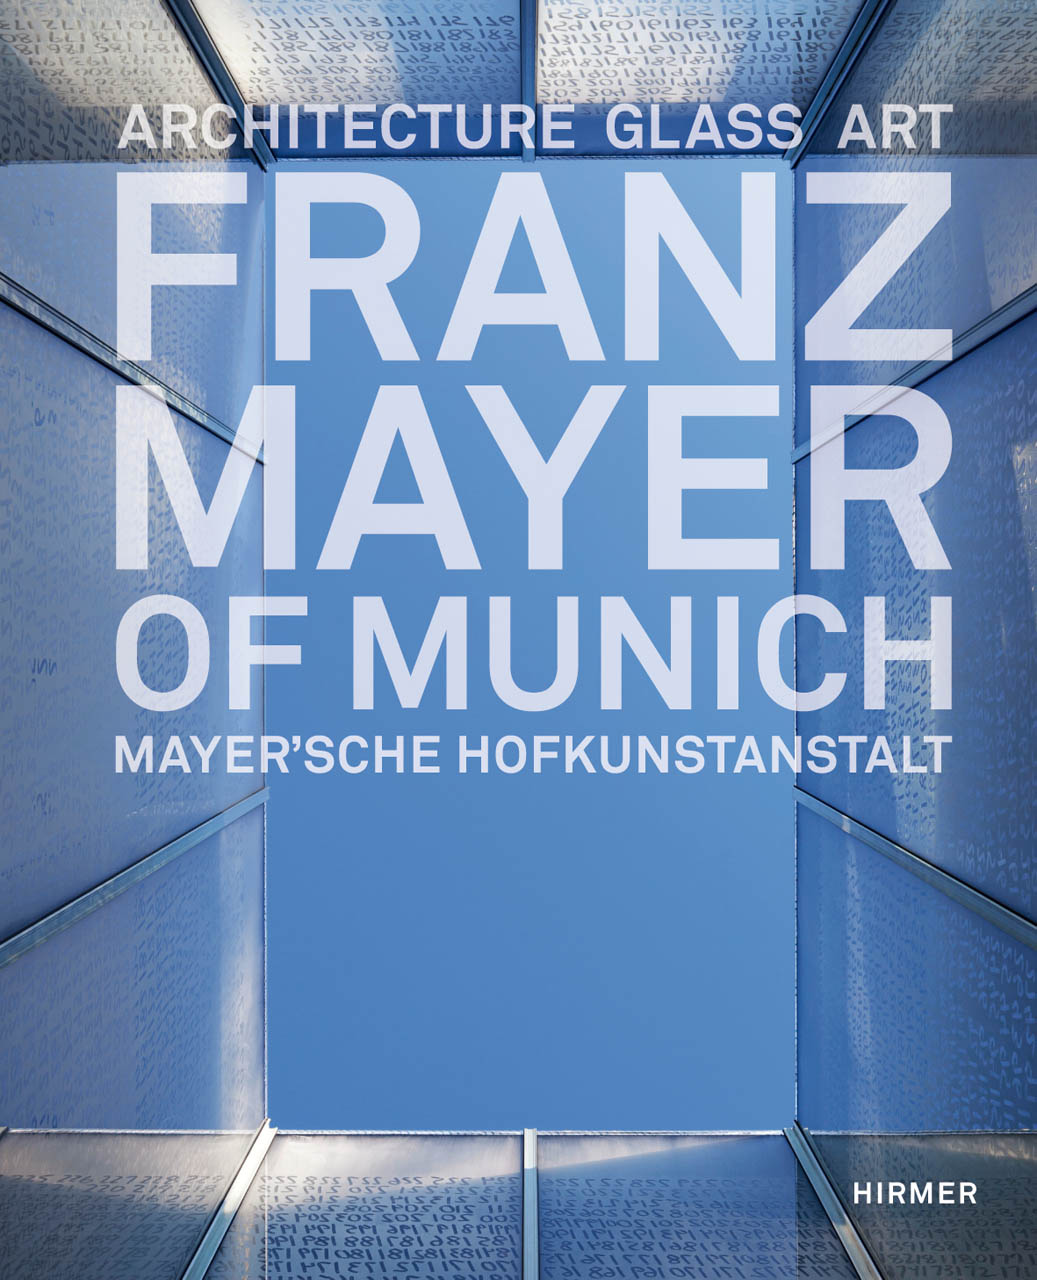 Franz Mayer of Munich: Architecture, Glass, Art